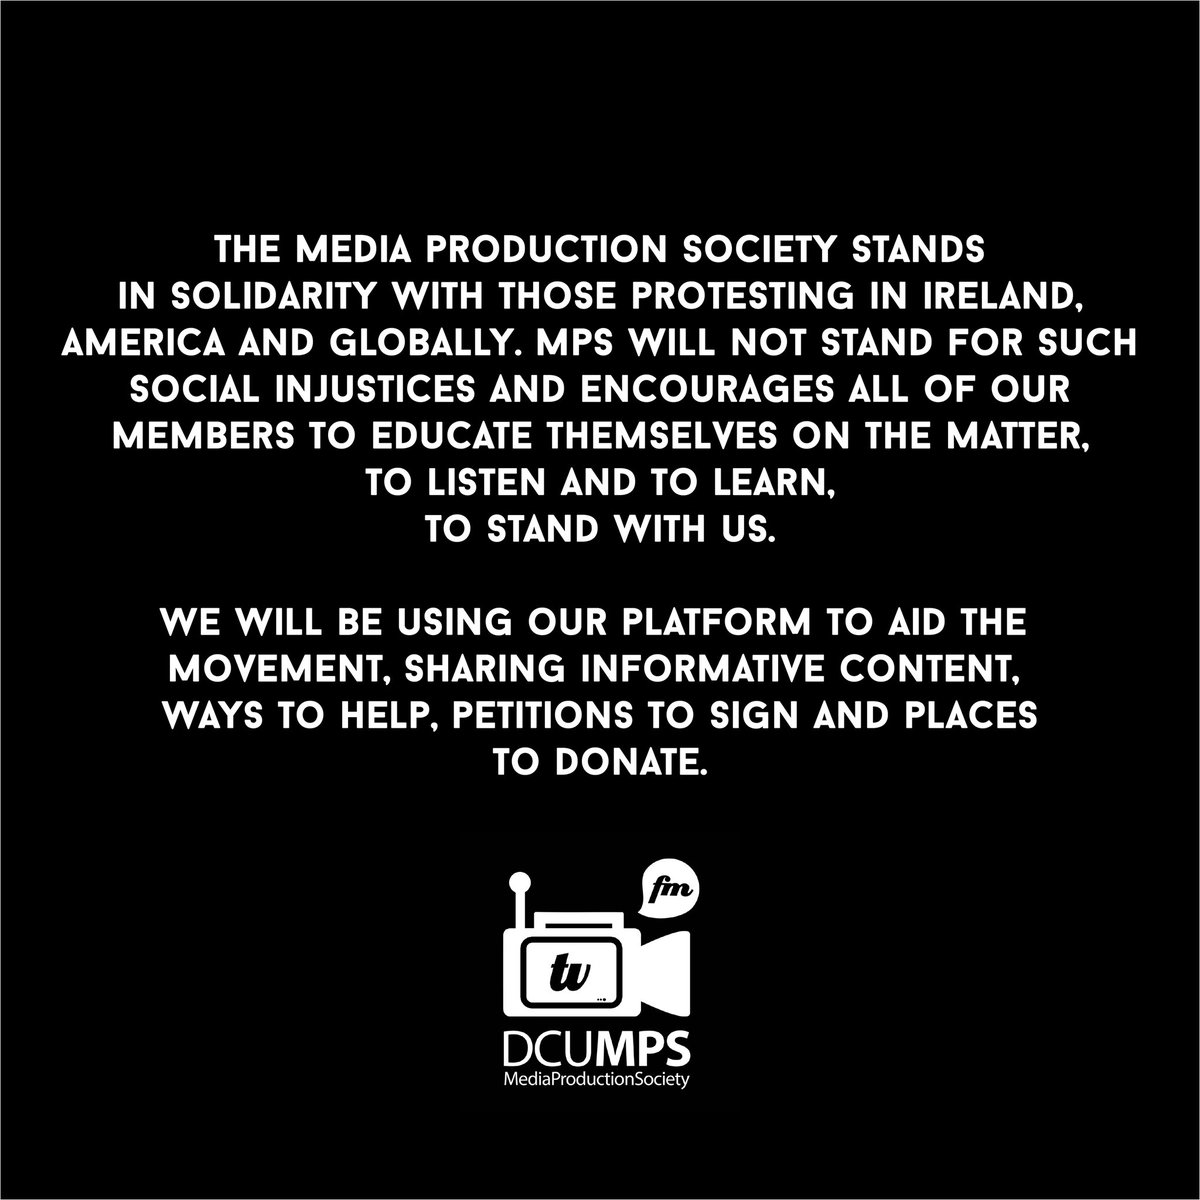 / BLACK LIVES MATTER / Here at the DCU Media Production Society we support and stand in solidarity with the #BlackLivesMatter movement. To find out more ways to help, visit https://t.co/NS0RwXQmy2 🖤 https://t.co/VfbqgMhvL1